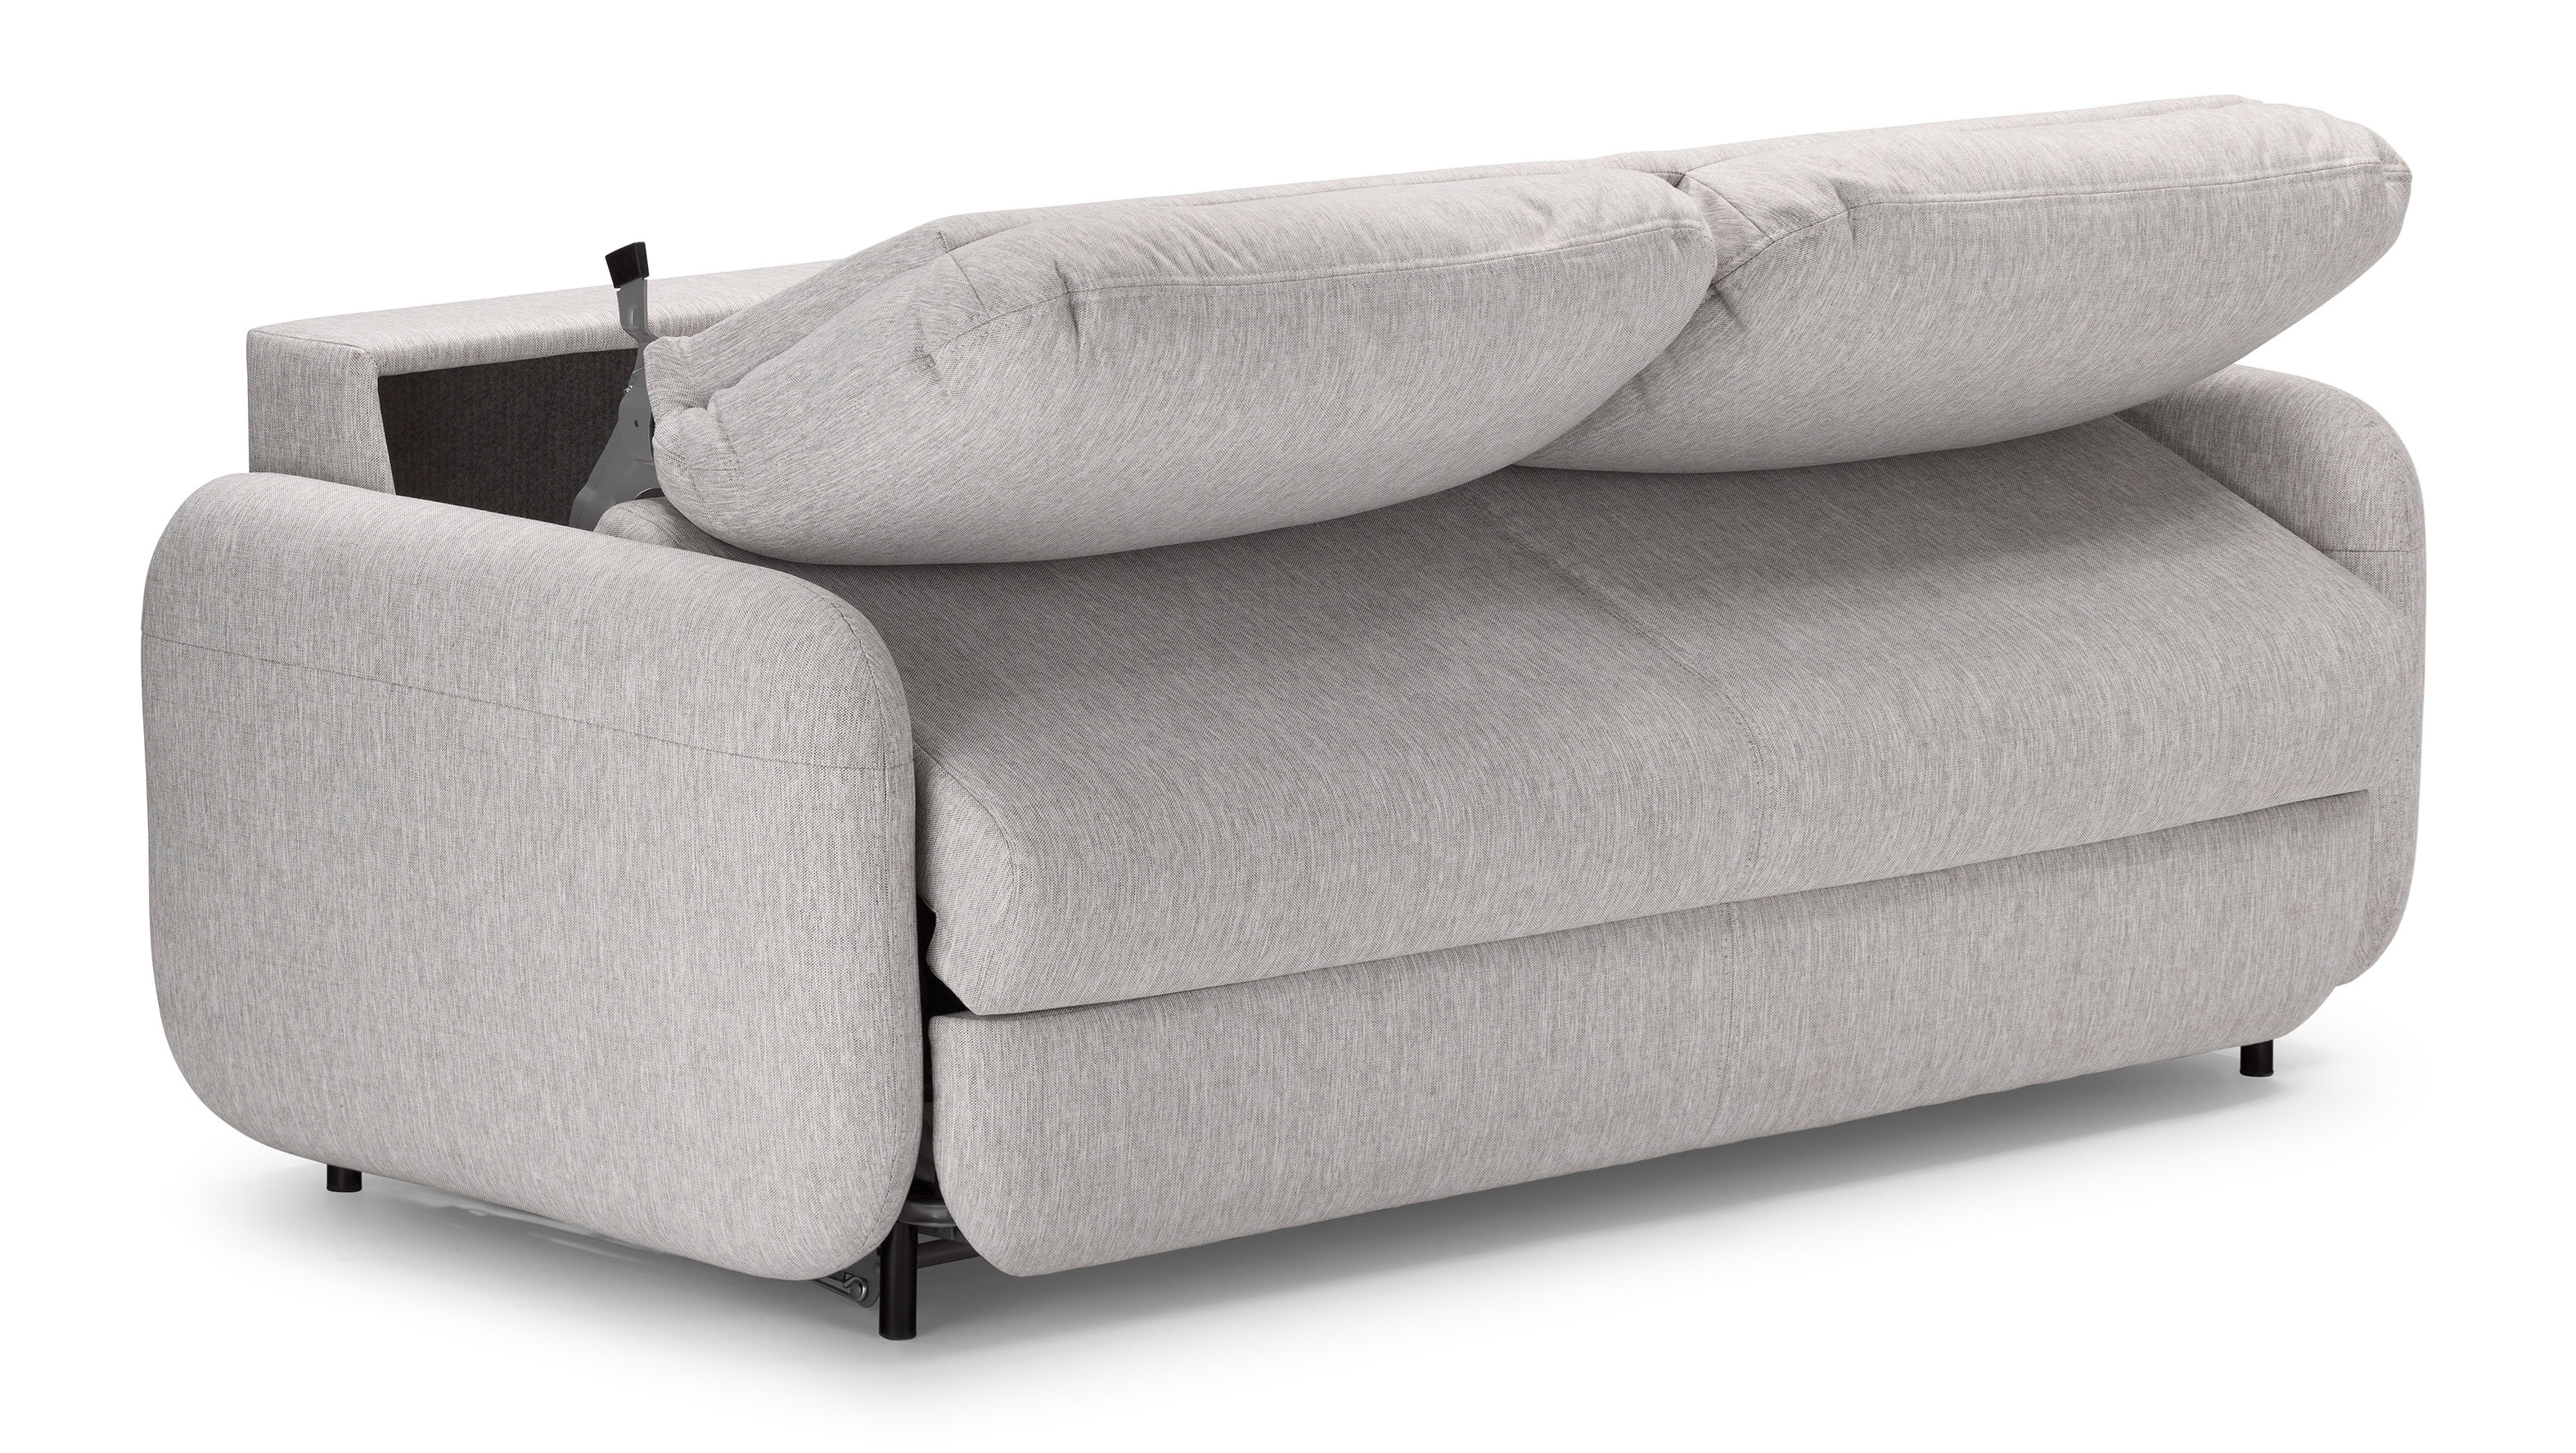 canap convertible fluffy 2 places l 190 cm gris bolia made in design. Black Bedroom Furniture Sets. Home Design Ideas